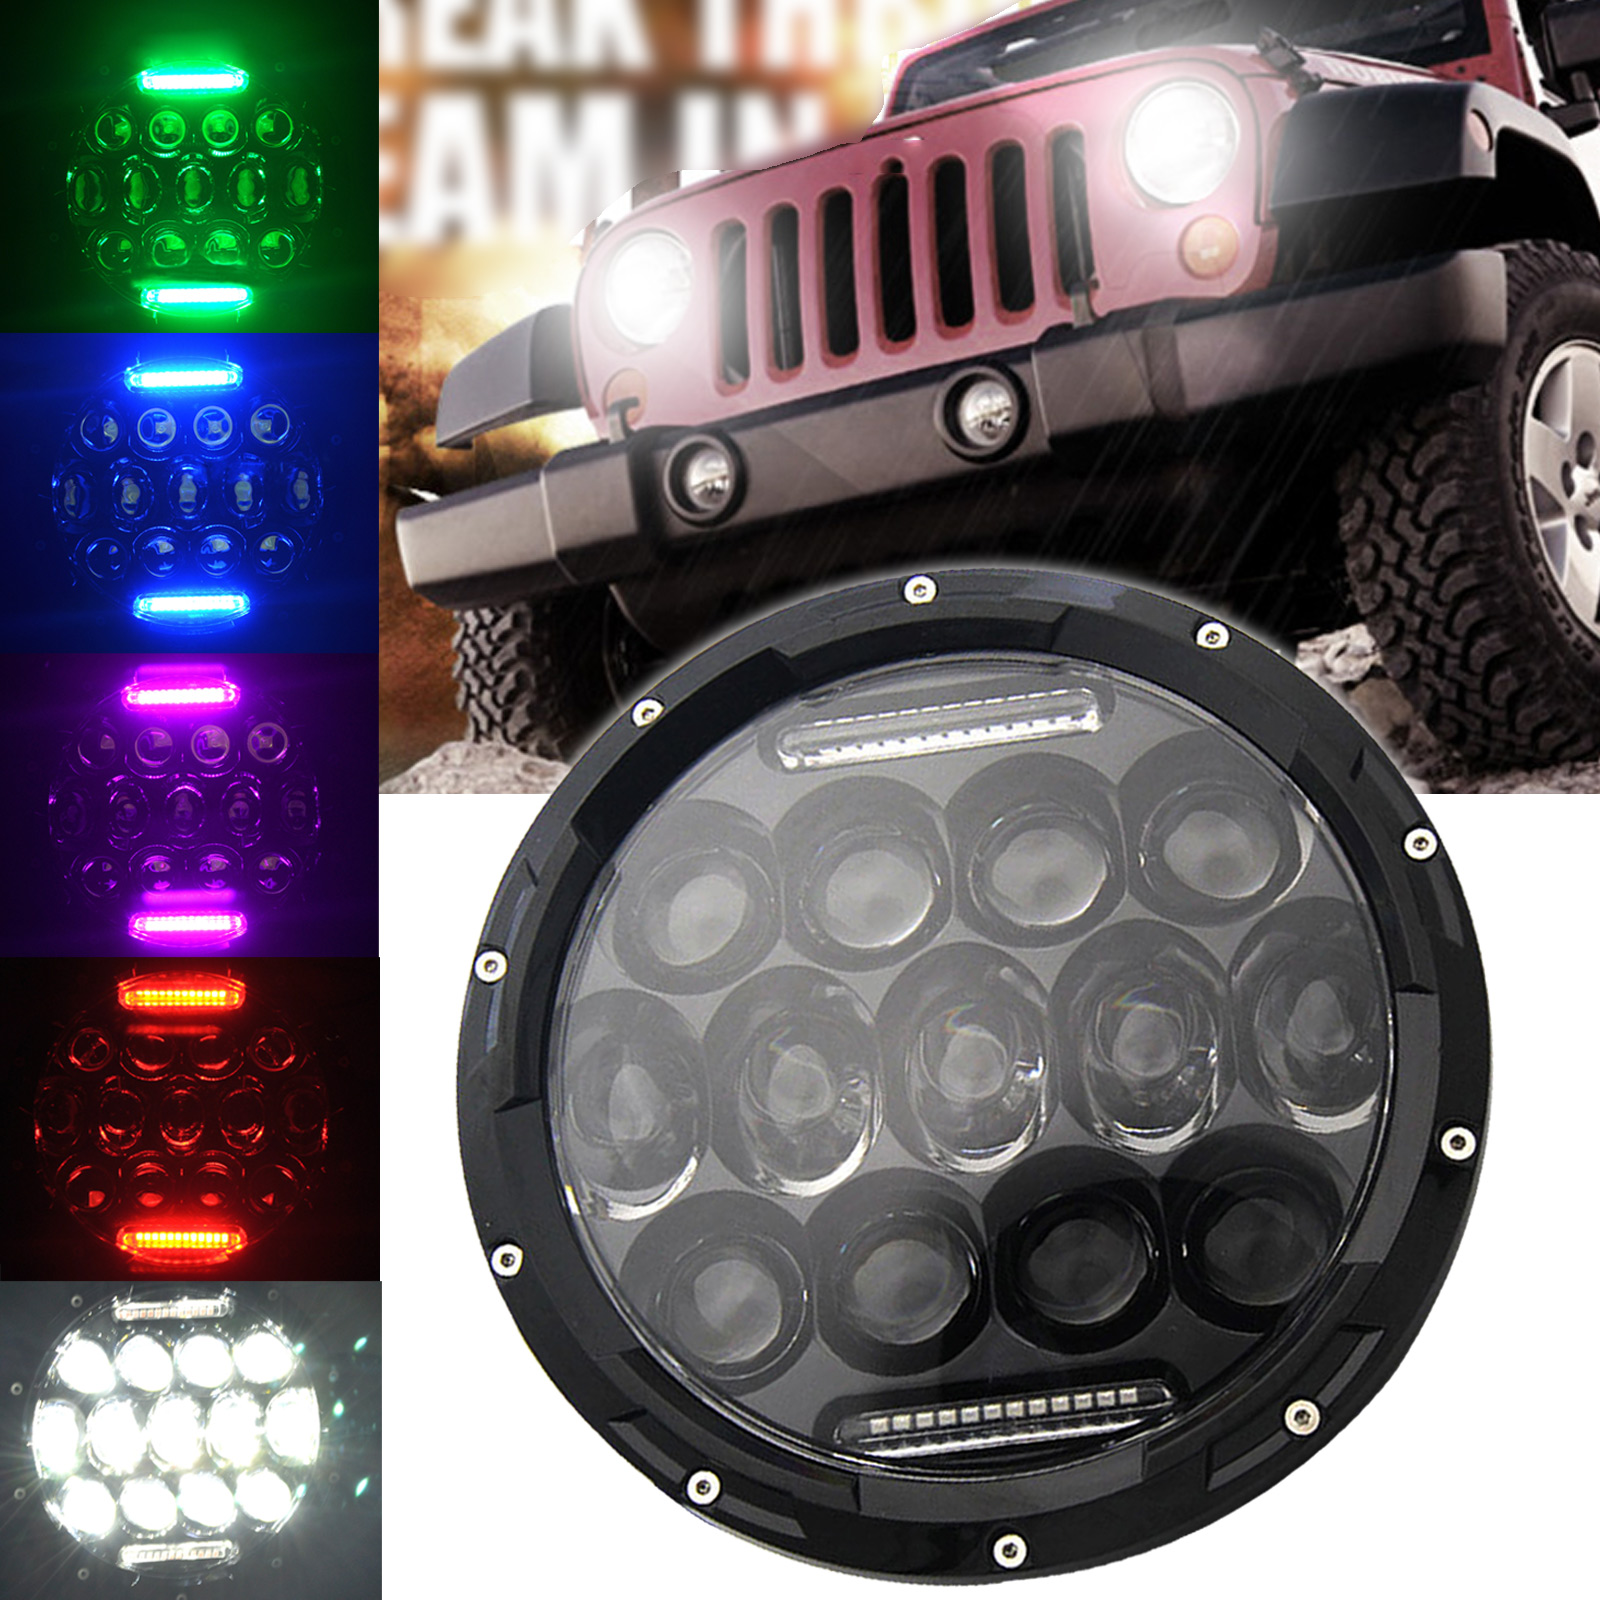 7inch 75W LED Motorcycle Headlight Projector Black Daymaker White for Jeep Wrangler Harley 7inch 75w motorcycle black hi lo beam projector daymaker led chips headlight for harley